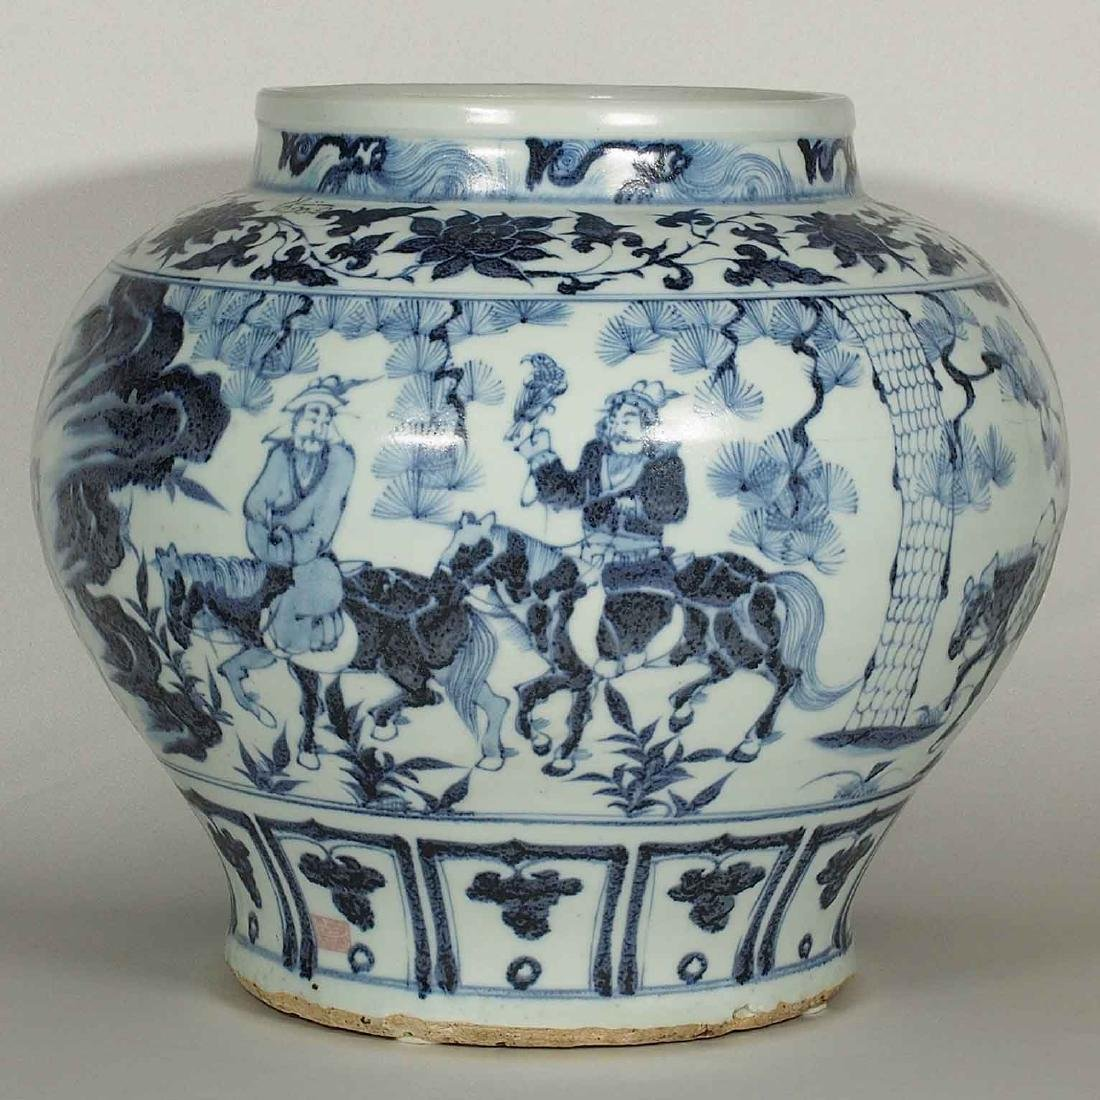 Persian Marked Jar with Wang Zhaojun Scenes Design,